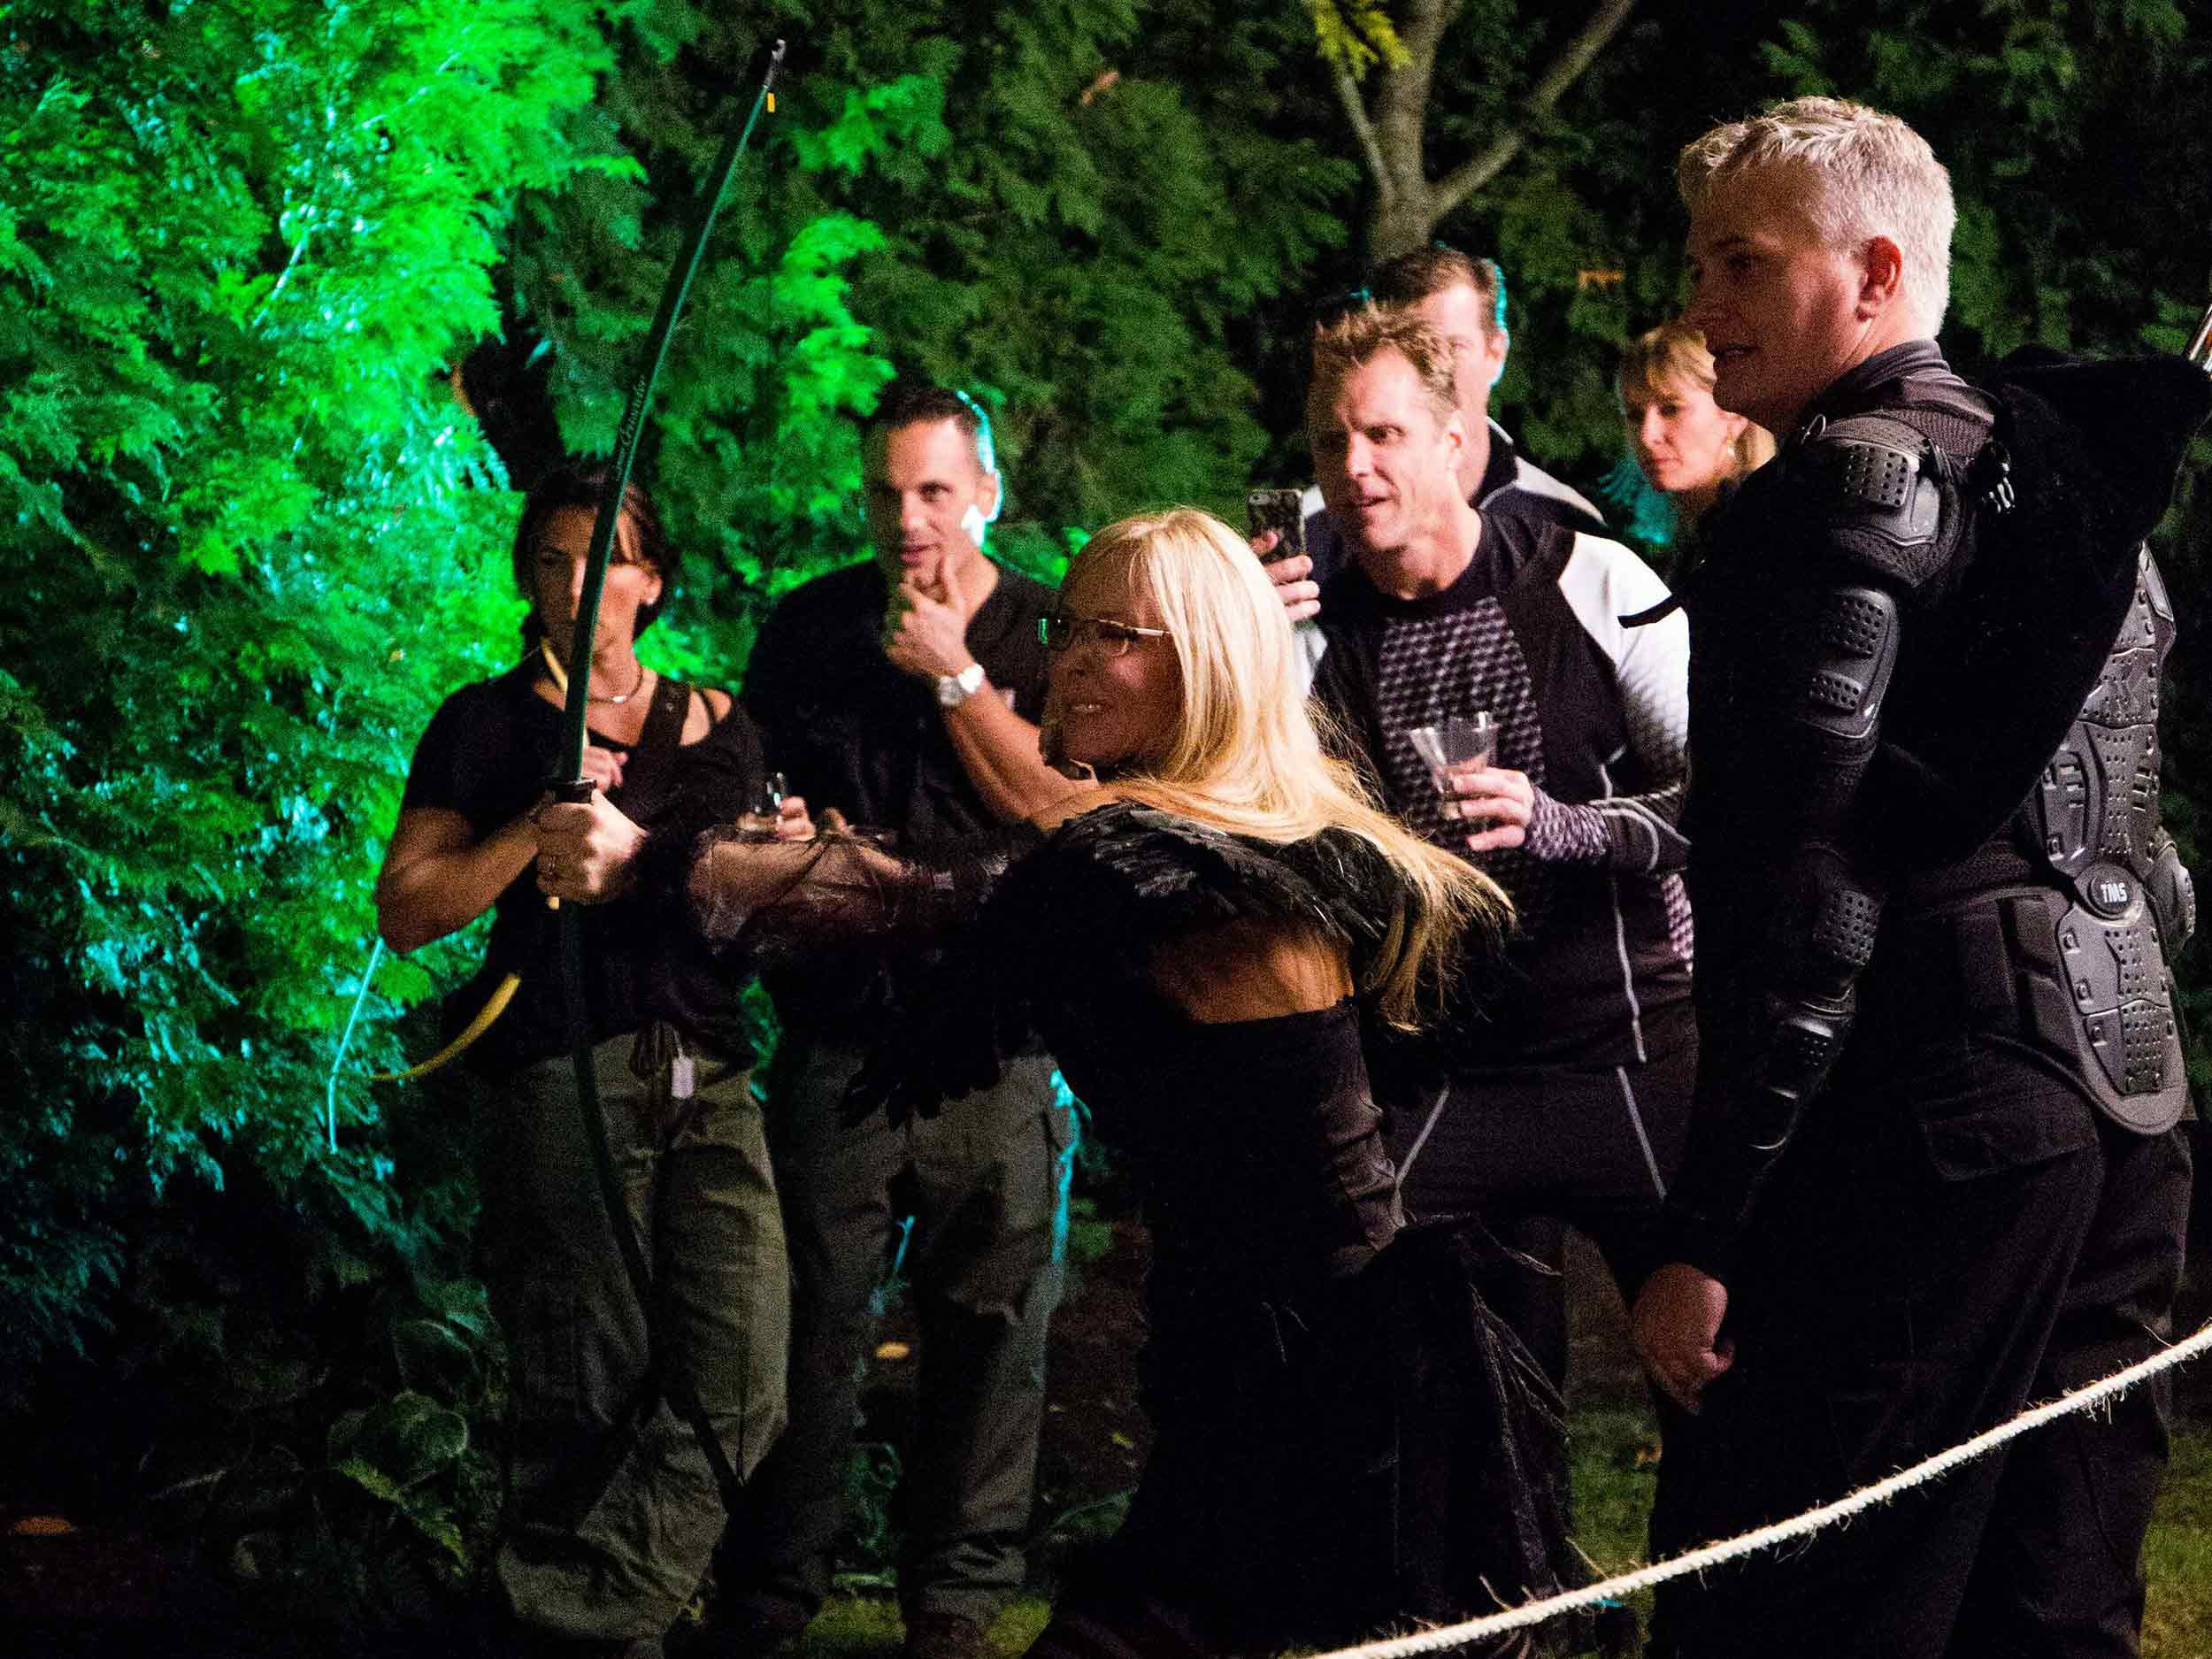 archery-station-hunger-games-halloween-party-in-boston-ma-with-harrington-events.jpg